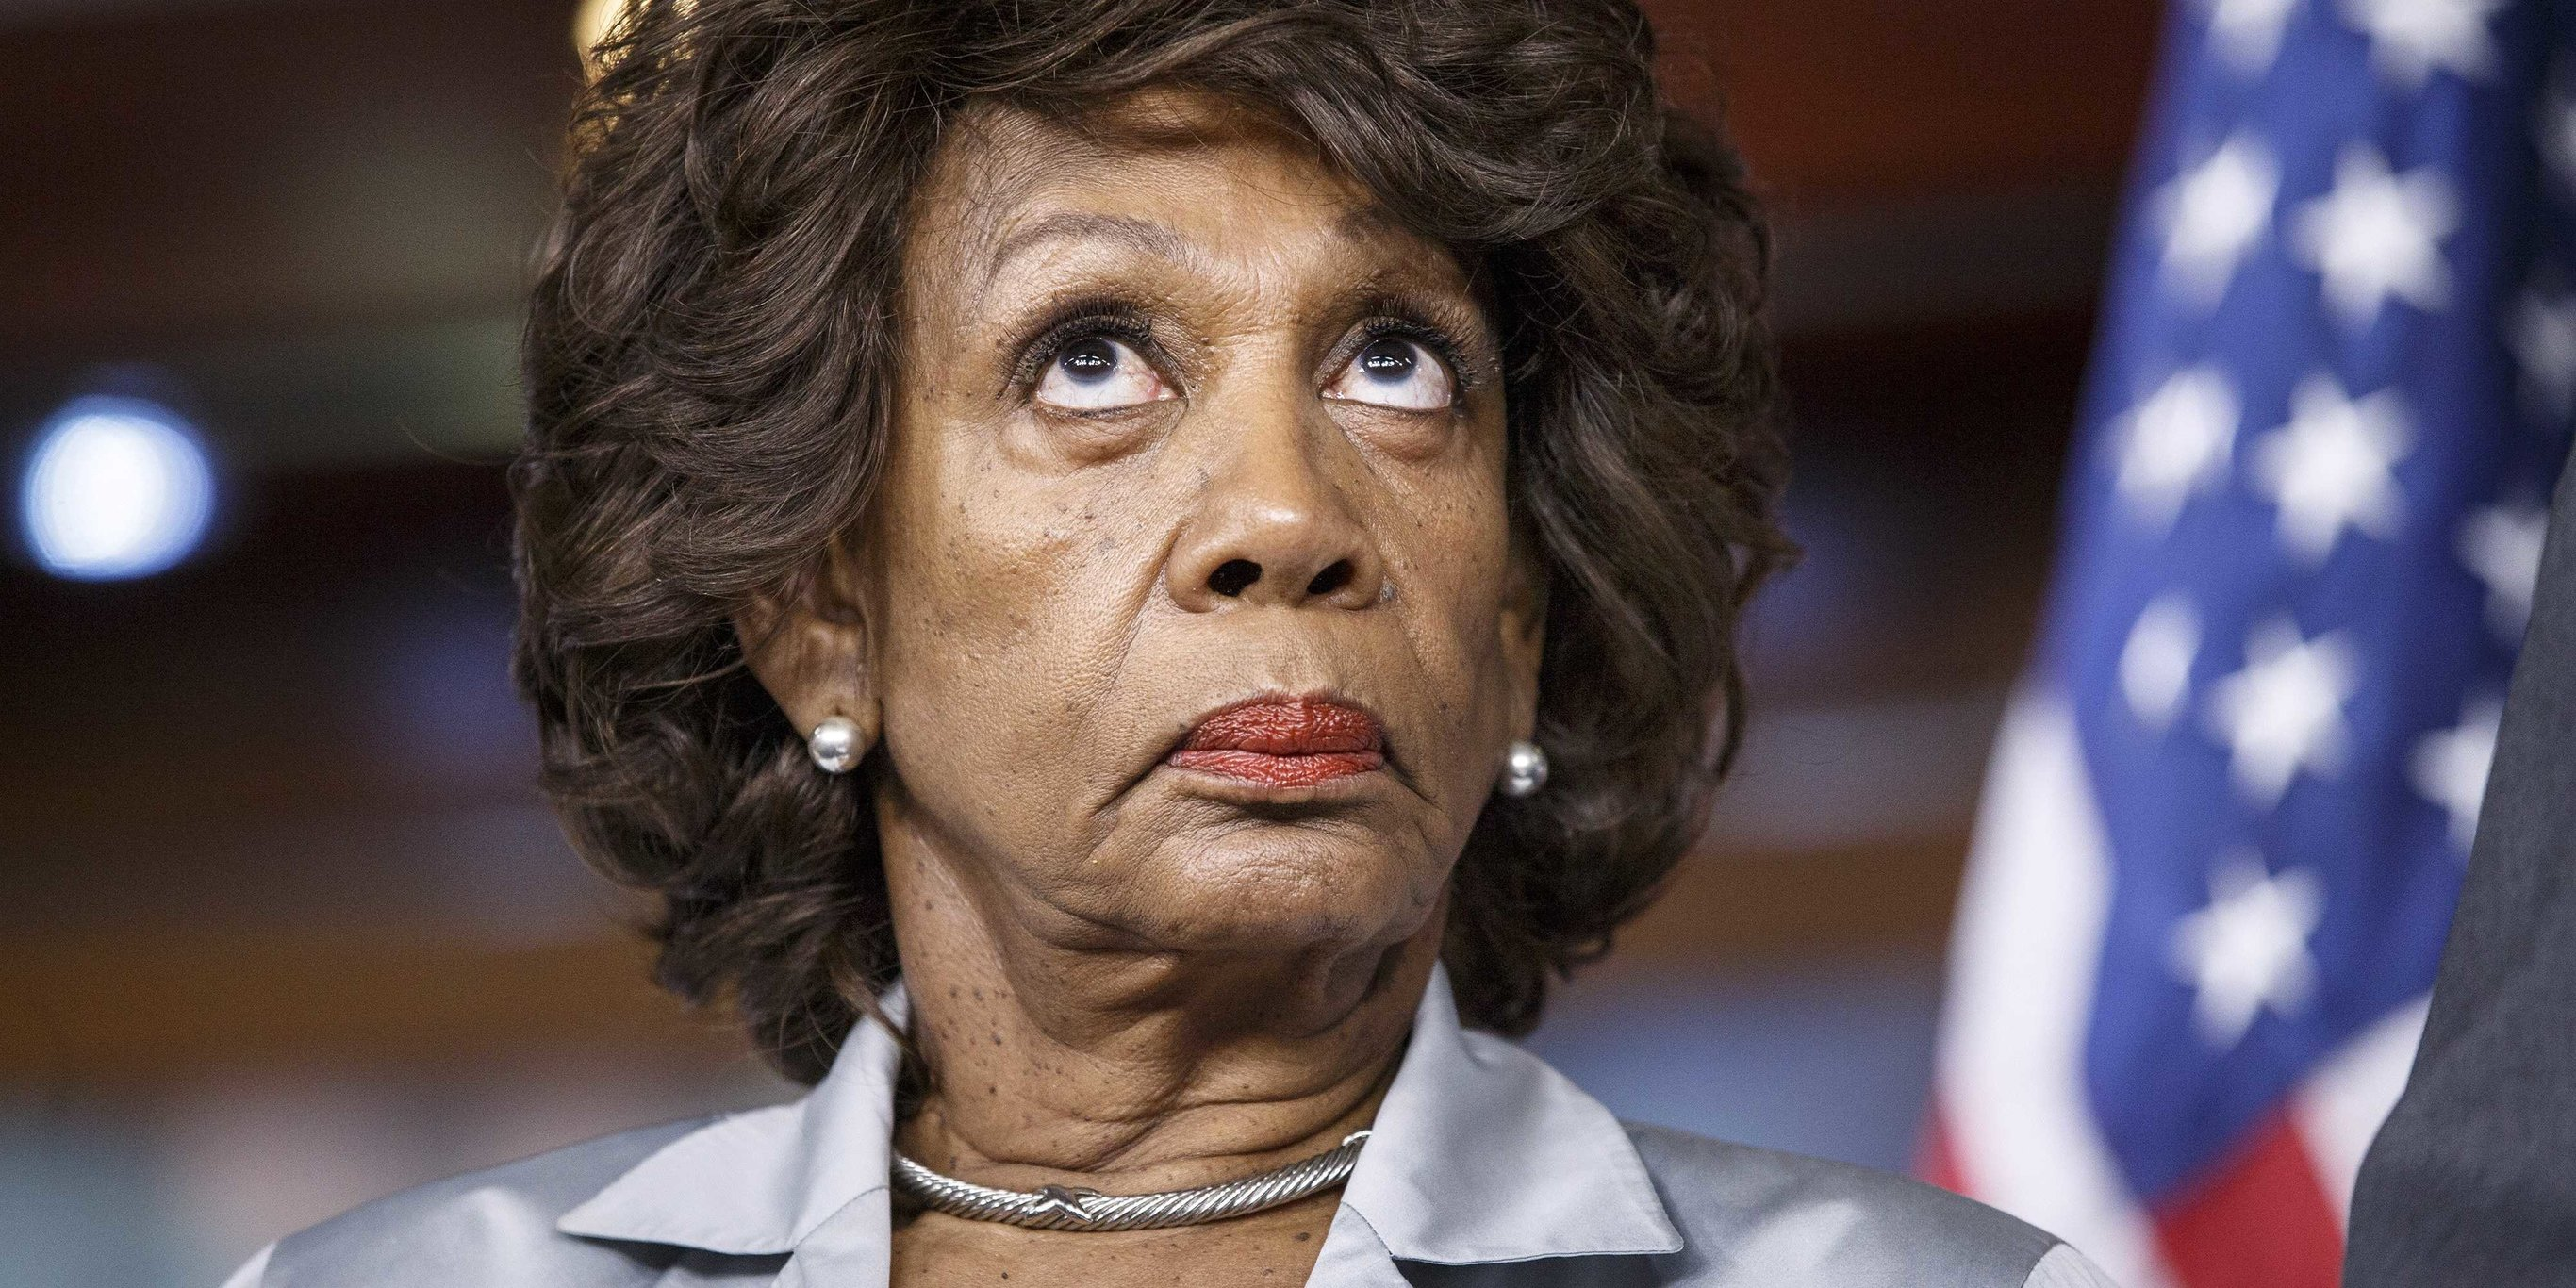 Maxine Waters: Those who support border wall don't love the country